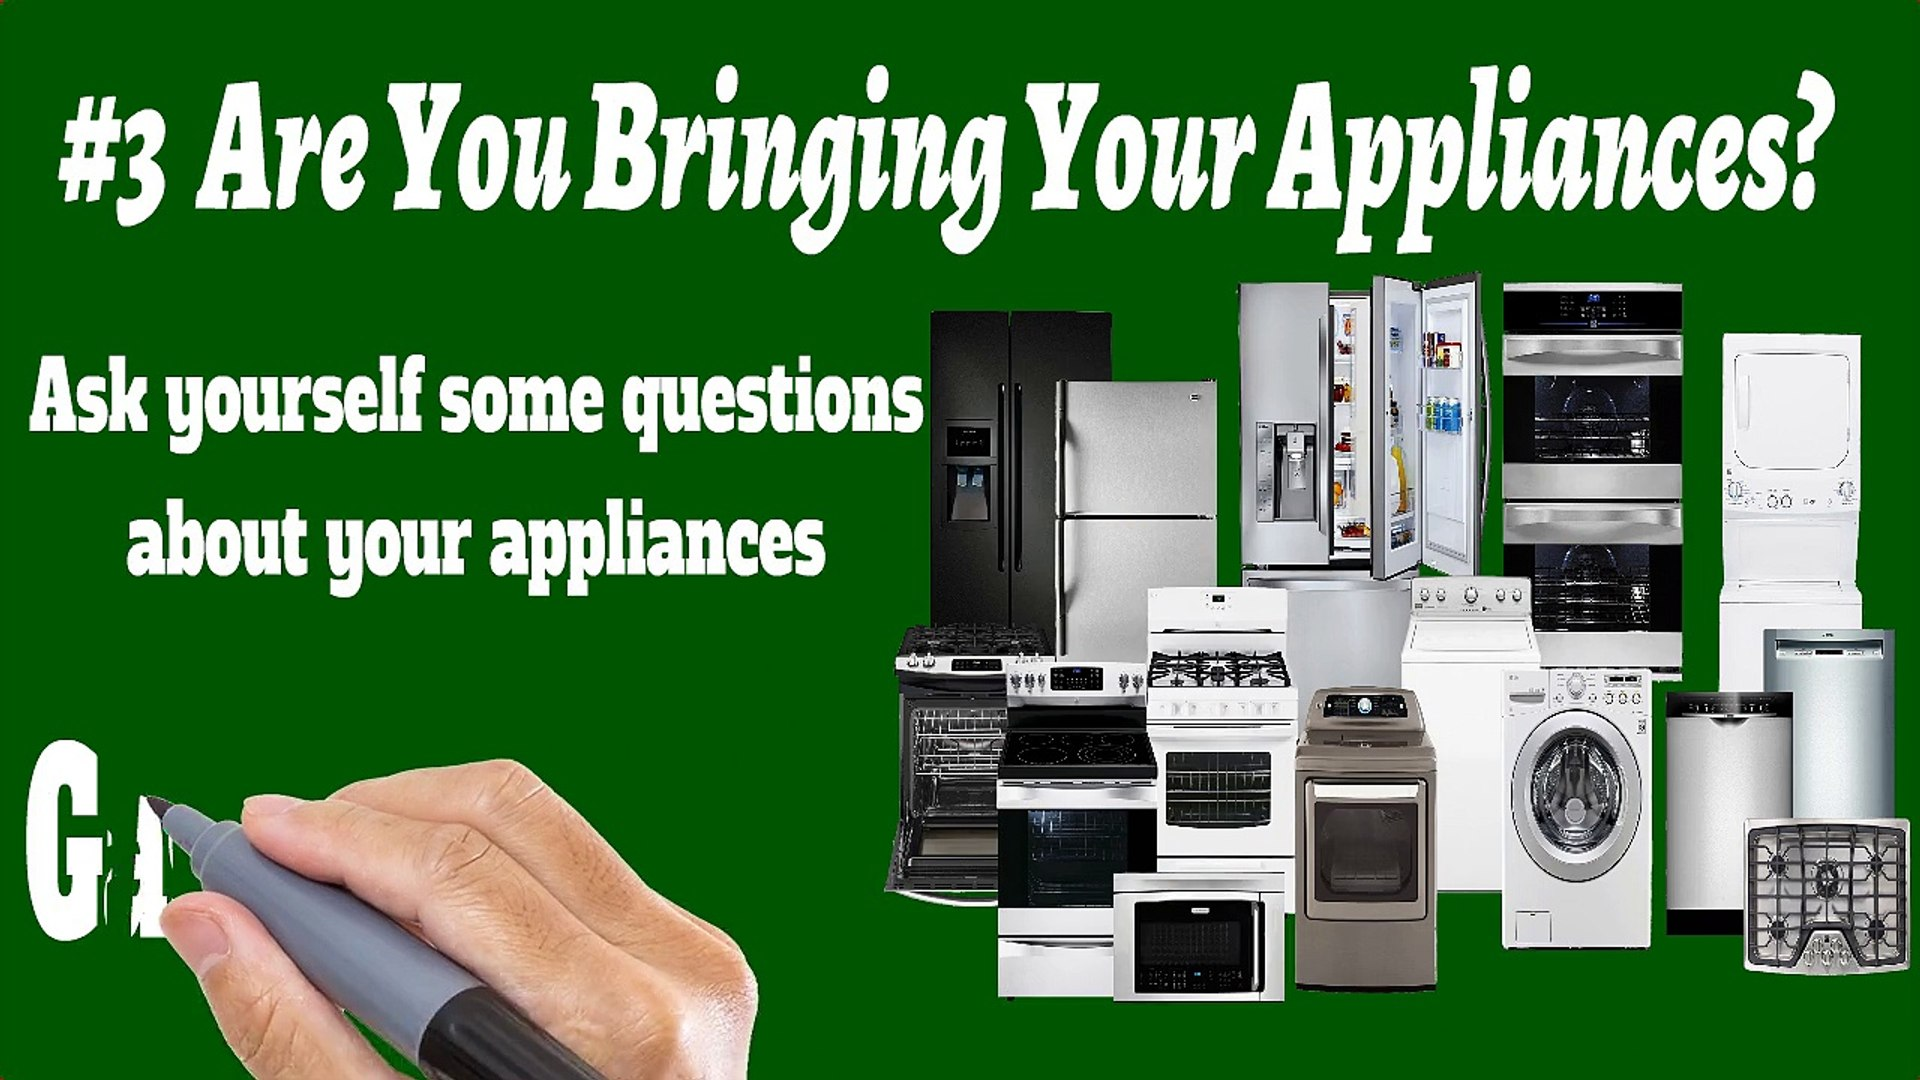 Appliance Movers Mississauga - 905-845-3667